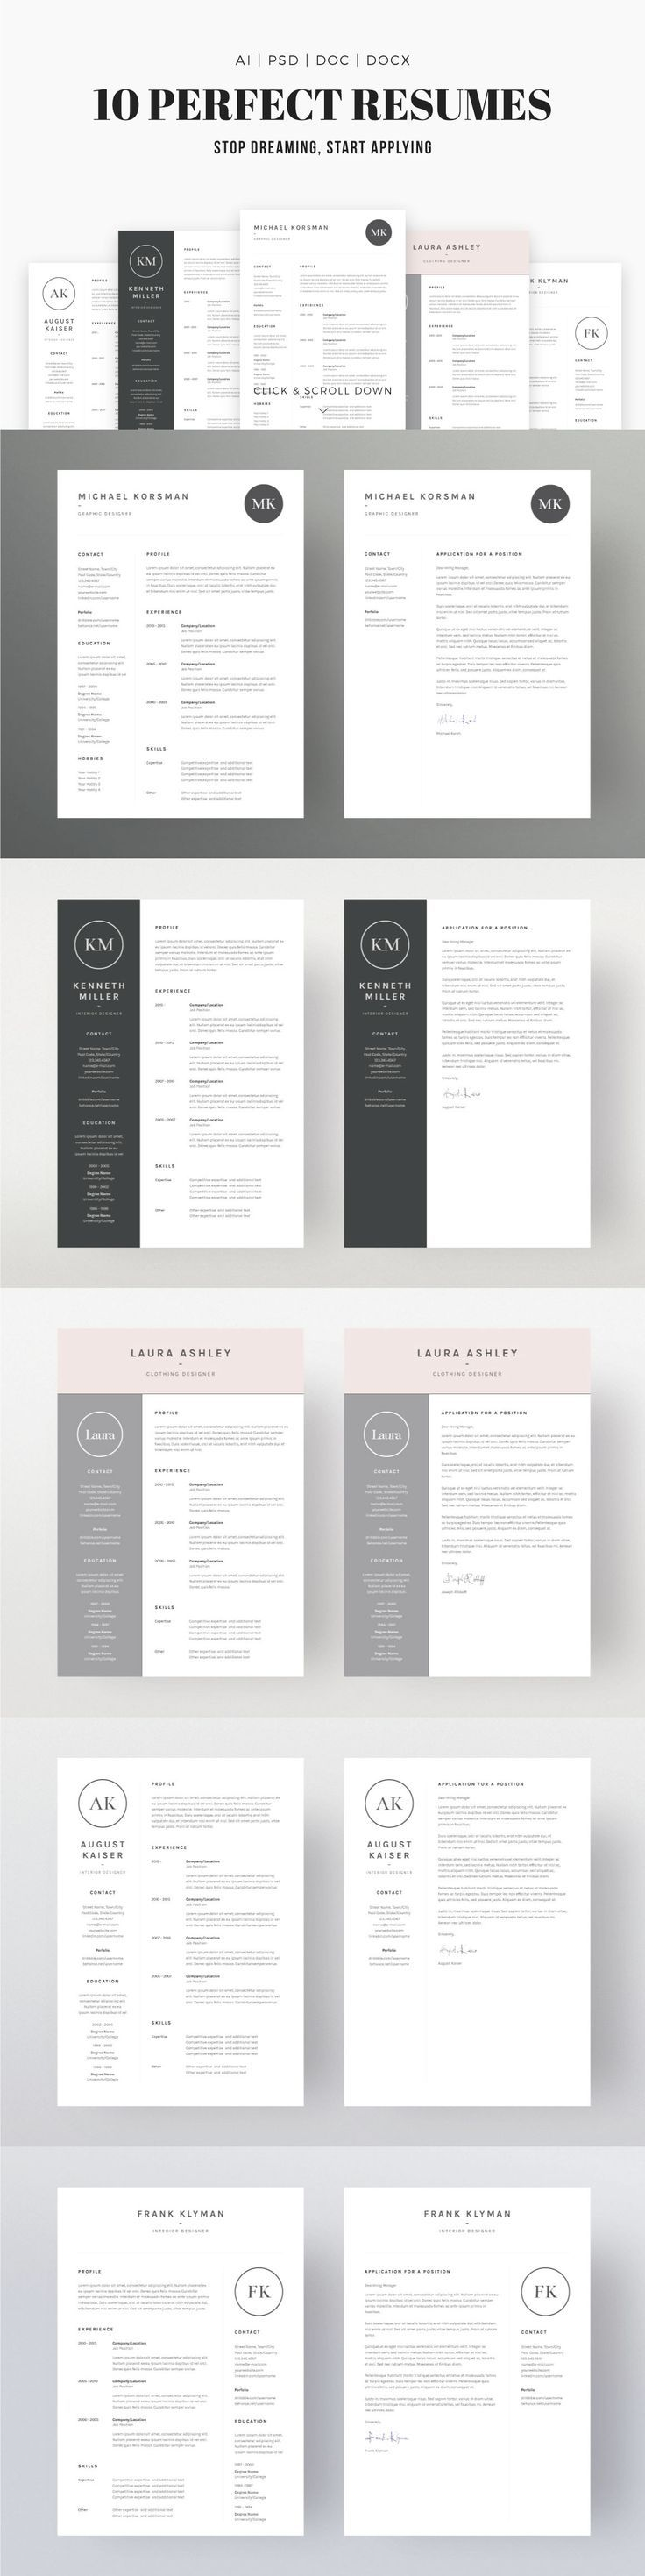 creative resume template cv template instant editable creative resume template cv template instant editable in ms word and pages cover letter personality types creative and creative resume